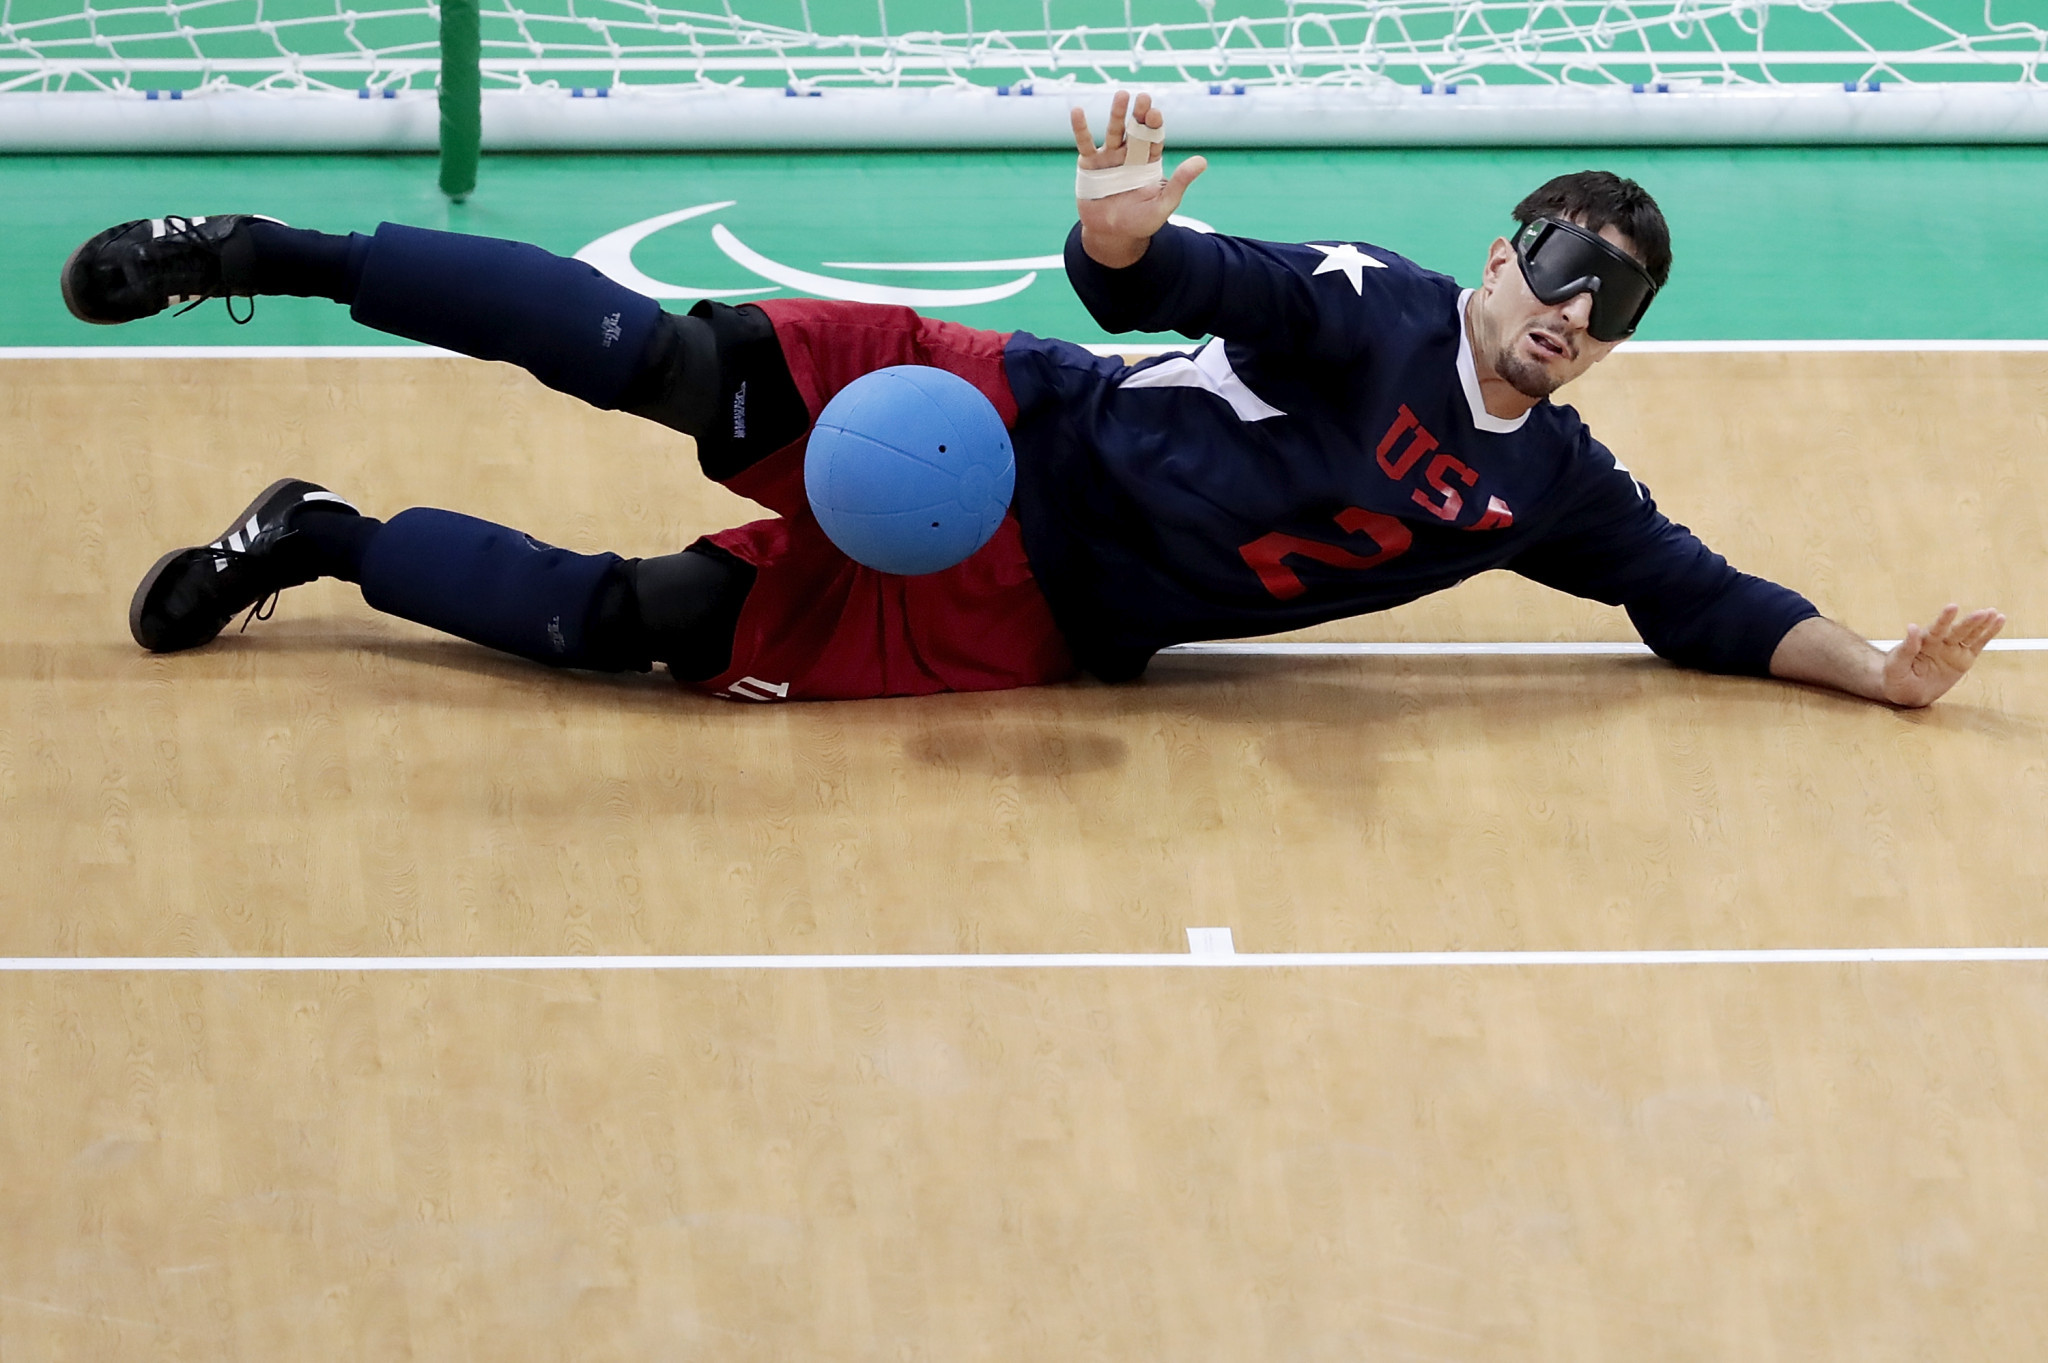 Goalball Paralympian to develop fitness app after scooping $25,000 prize